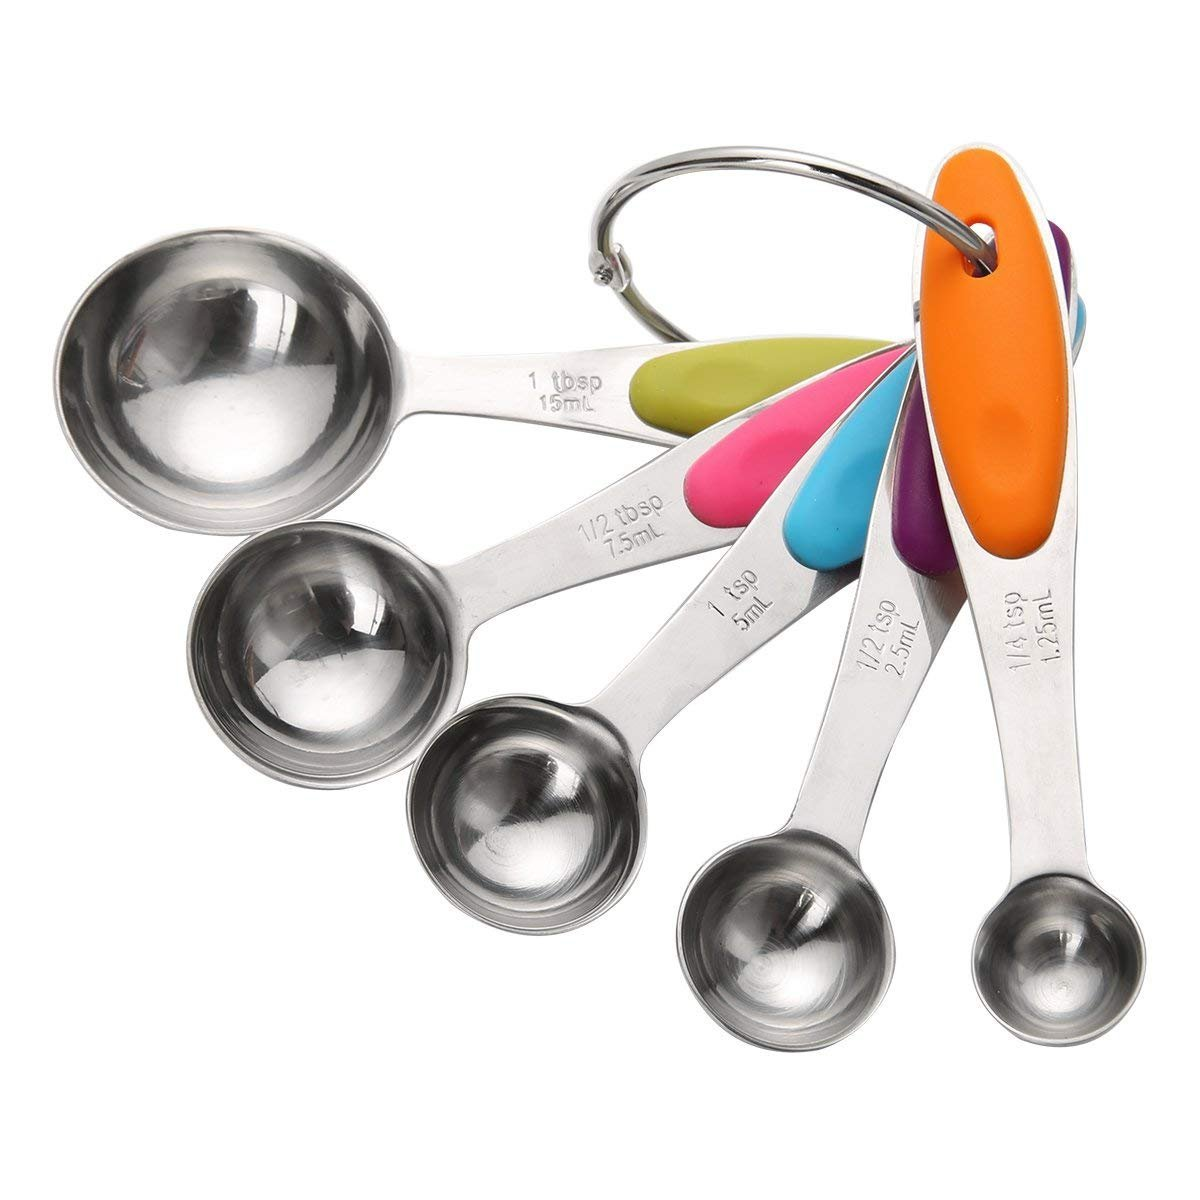 Measuring Spoons -304 Stainless Steel (18/8) Perfect for Baking and Cooking with Engraving US And Metric Measurement, Food Grade Soft Silicone Handle (Set of 5) Sefone household items